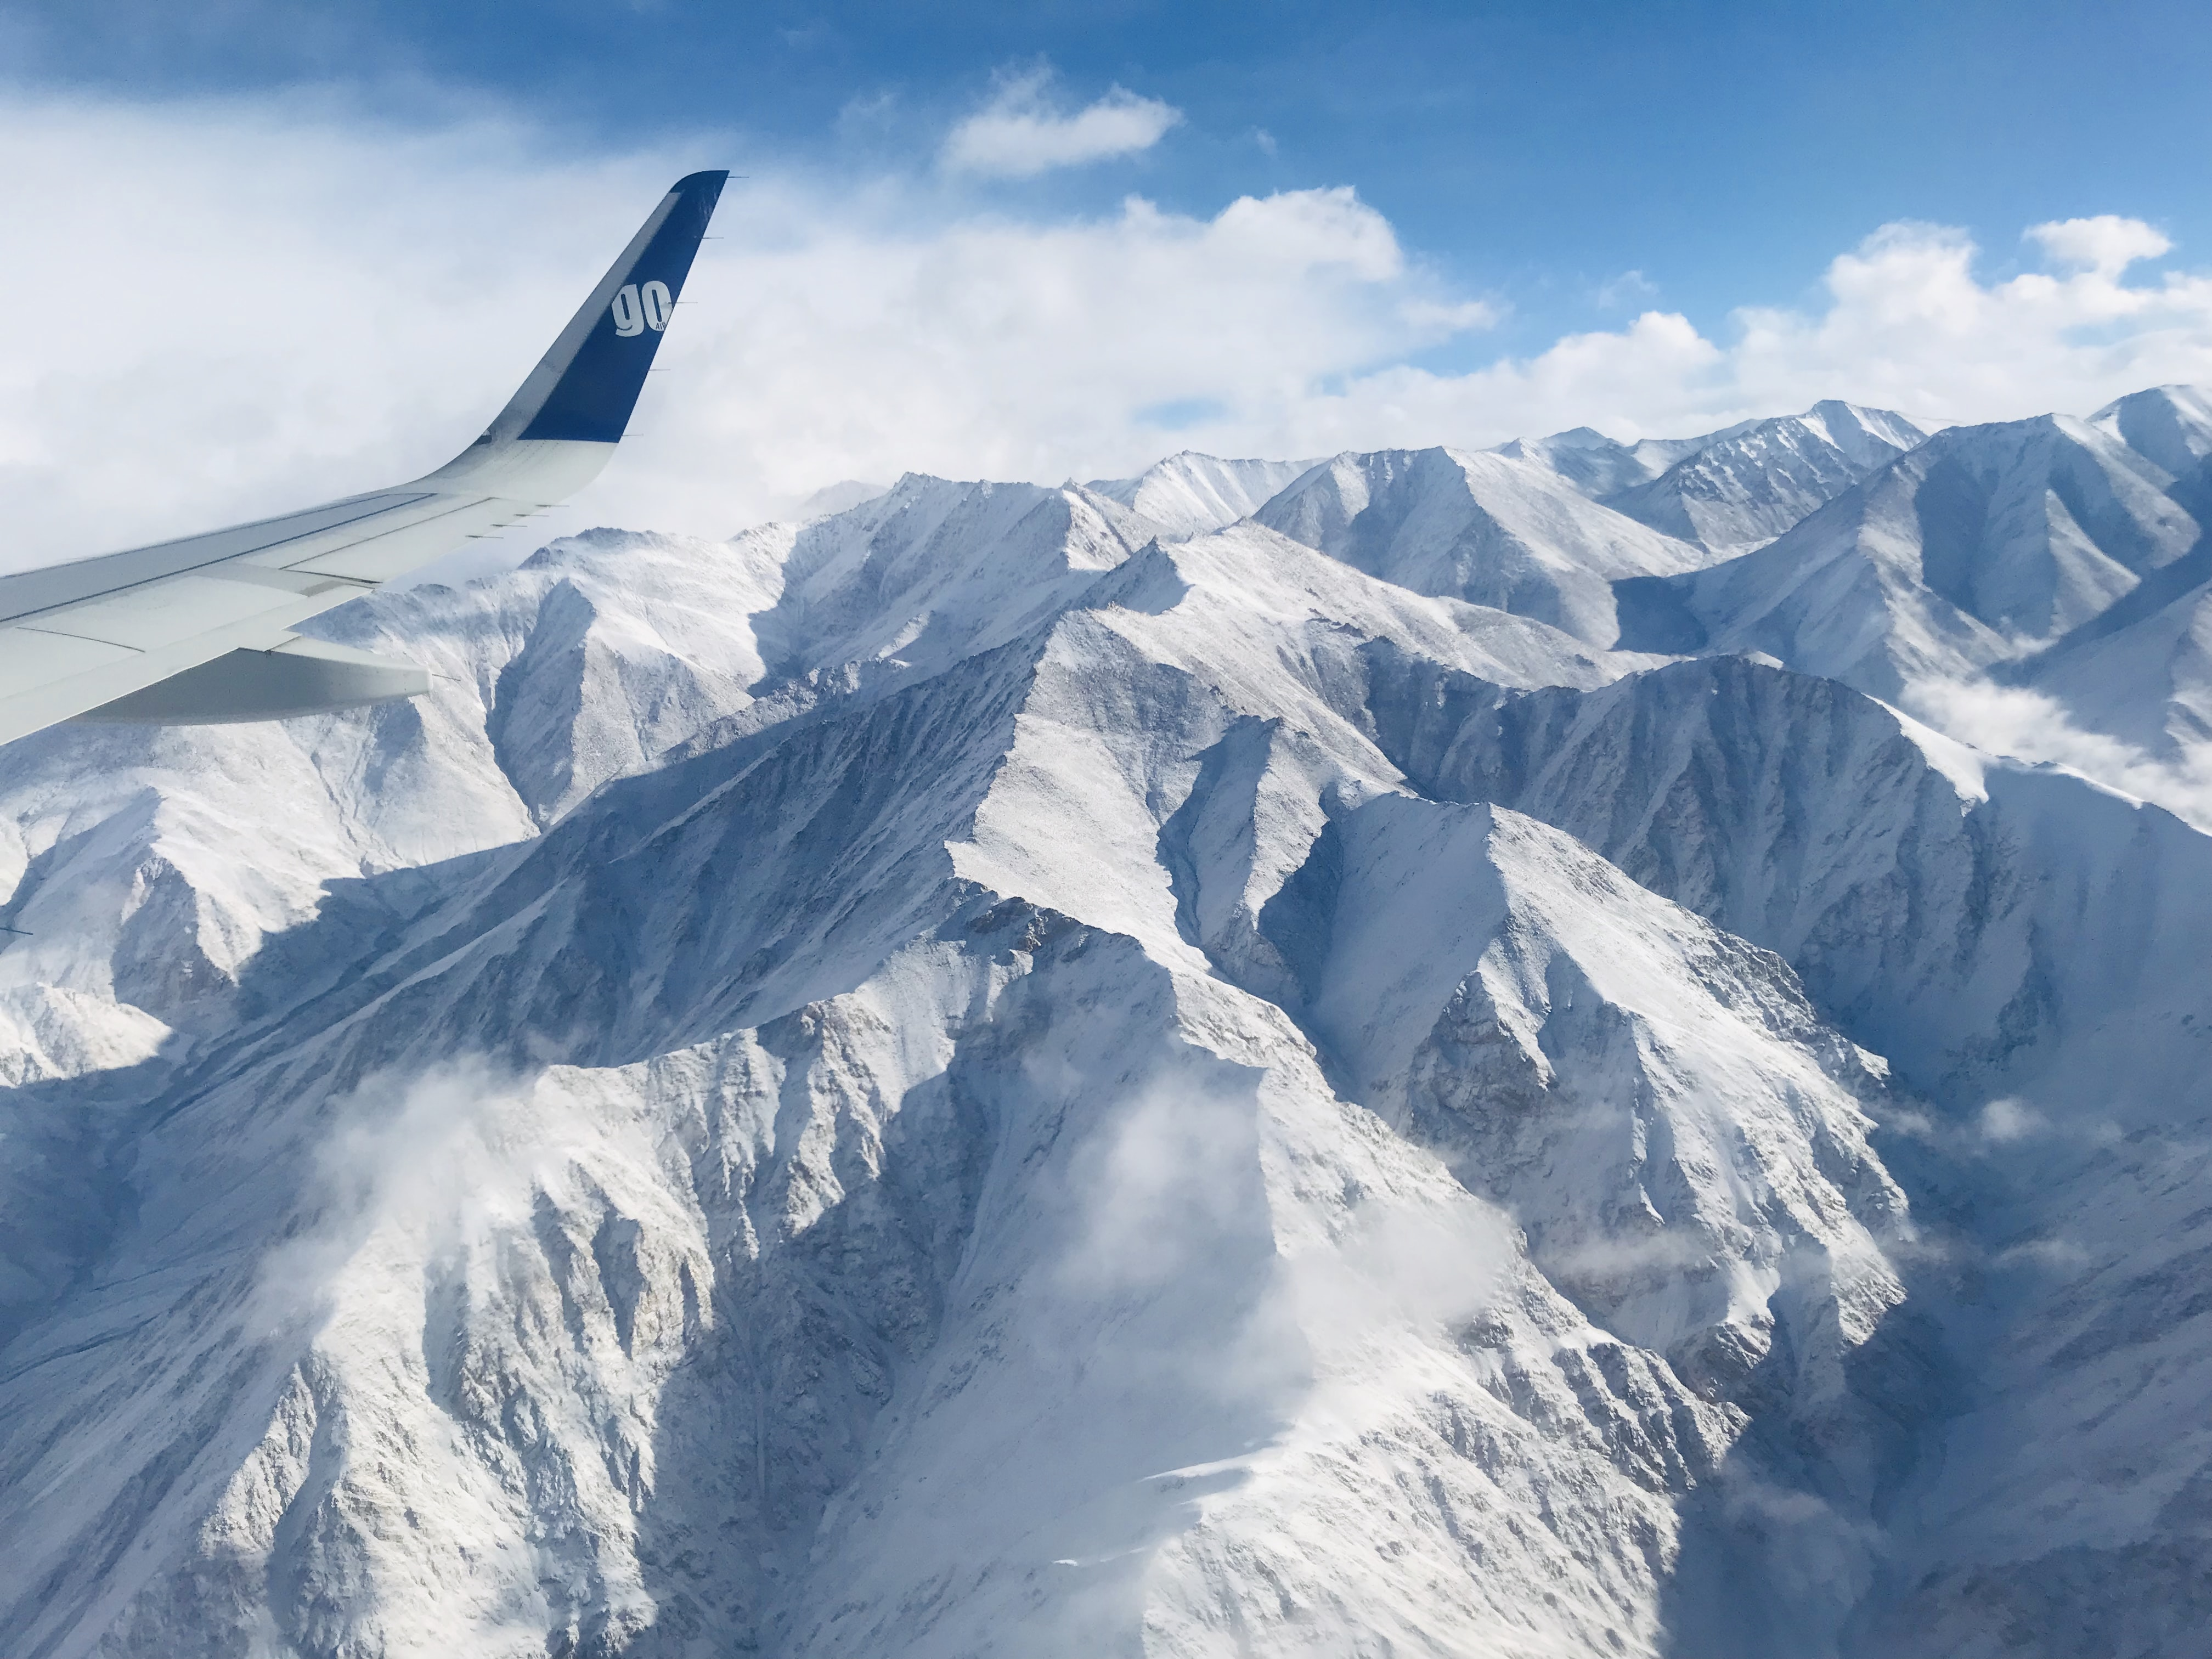 airplane flying near snow covered mountain during daytime